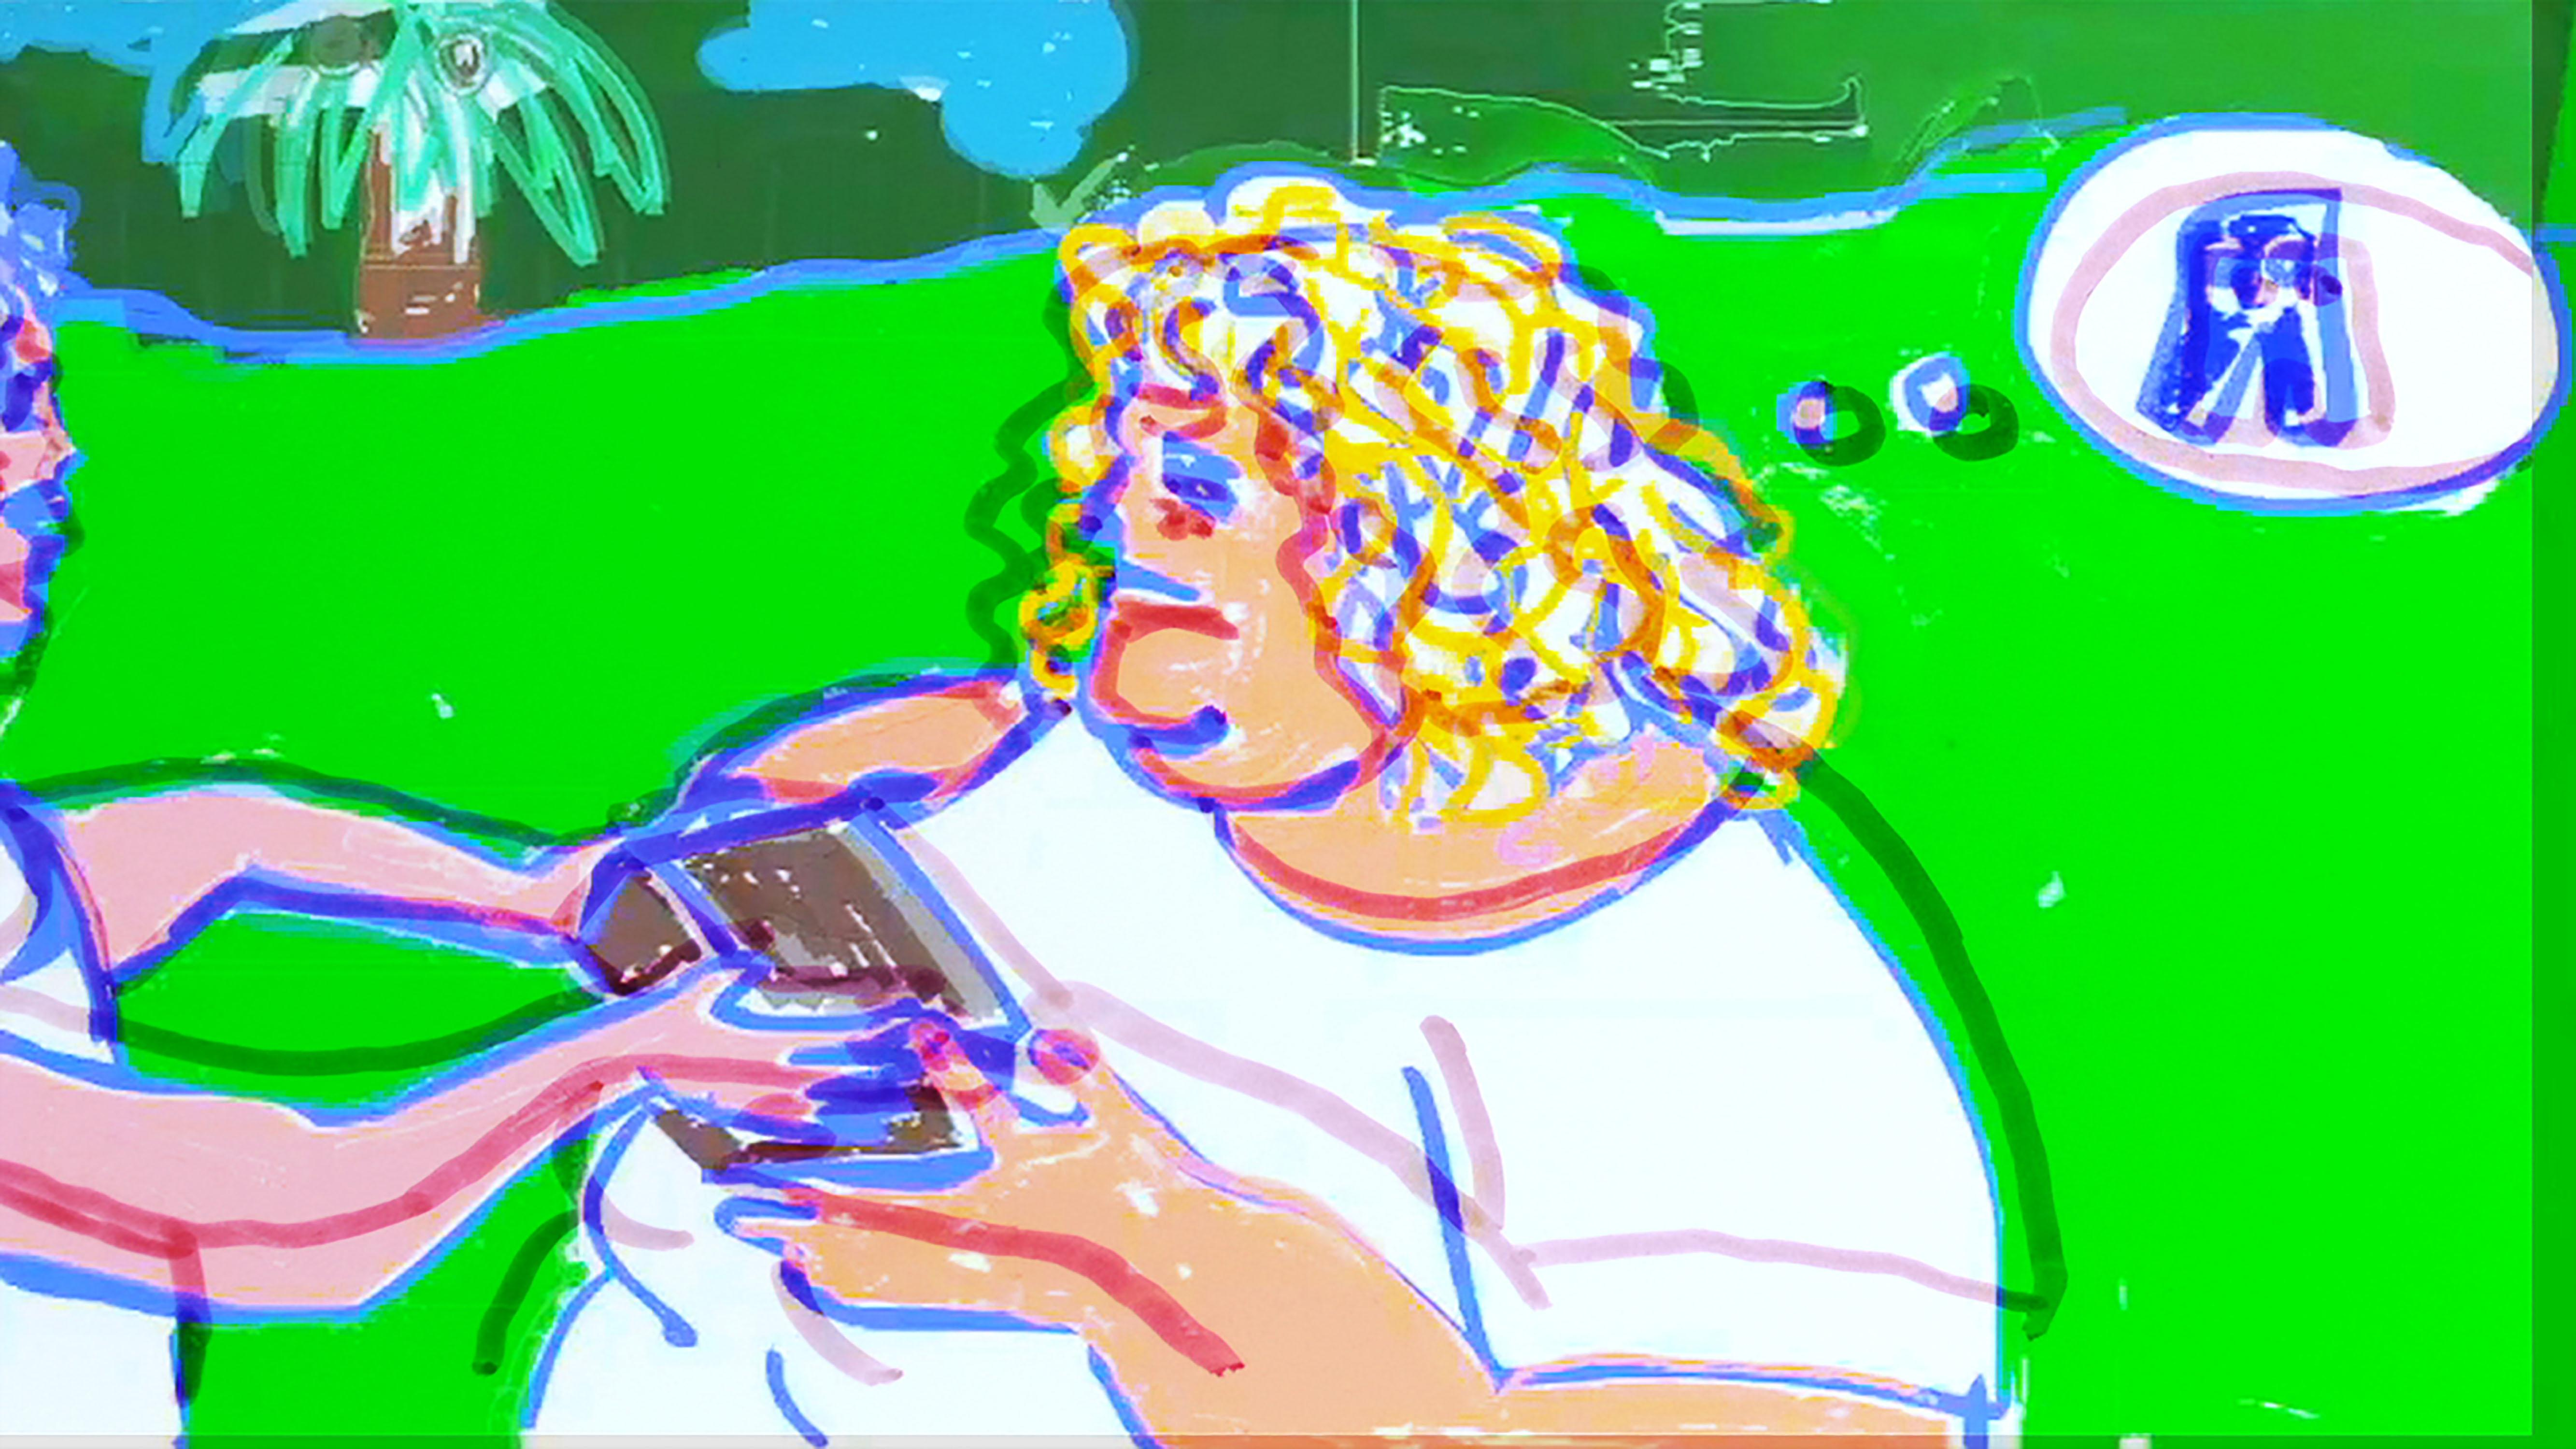 In a loosely rendered digital illustration, a person hands an object resembling a box or book to a blonde woman in the center of the frame. Emerging from the blonde woman's head is a thought bubble containing a pair of blue jeans.